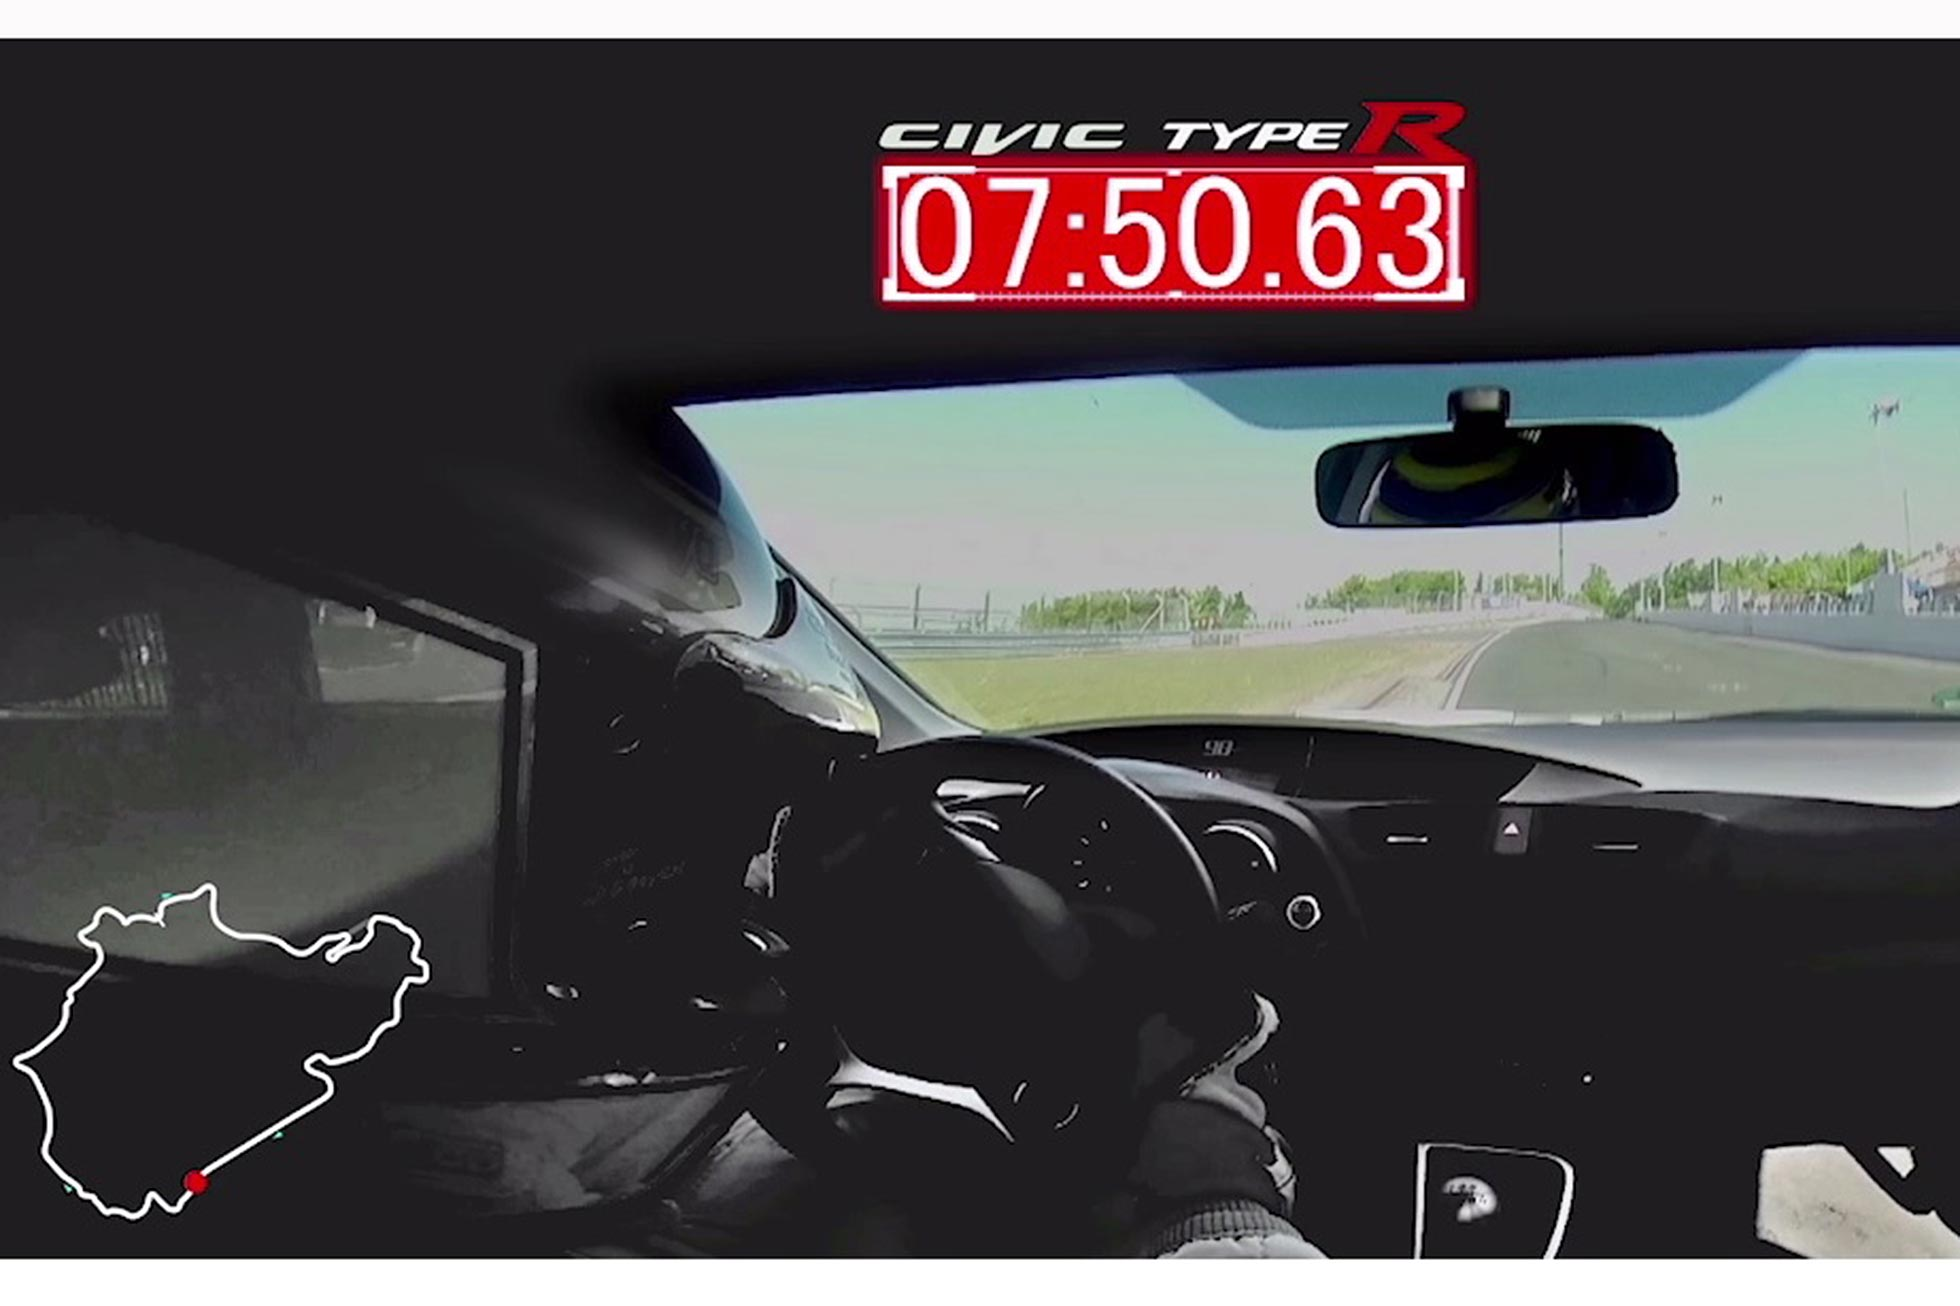 Honda Civic Type R Nurburgring record